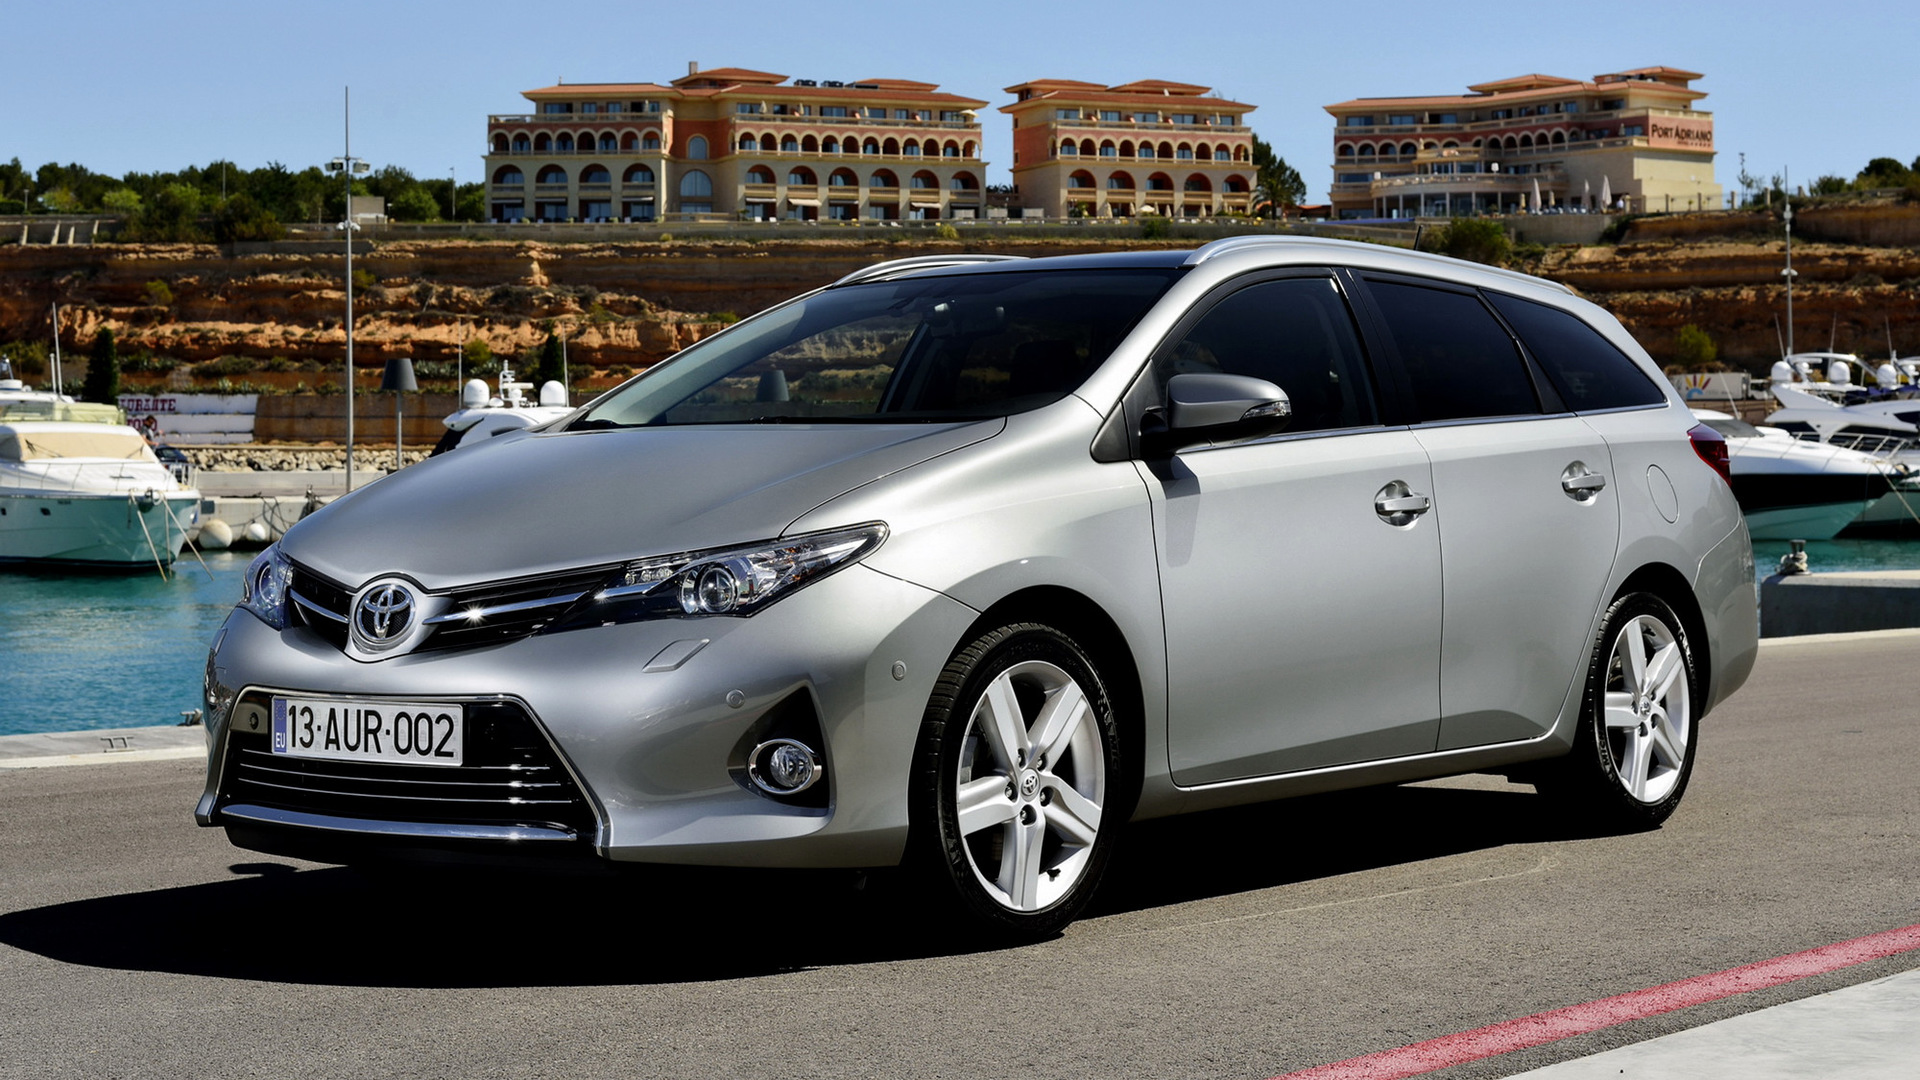 toyota auris touring sports 2013 wallpapers and hd images car pixel. Black Bedroom Furniture Sets. Home Design Ideas